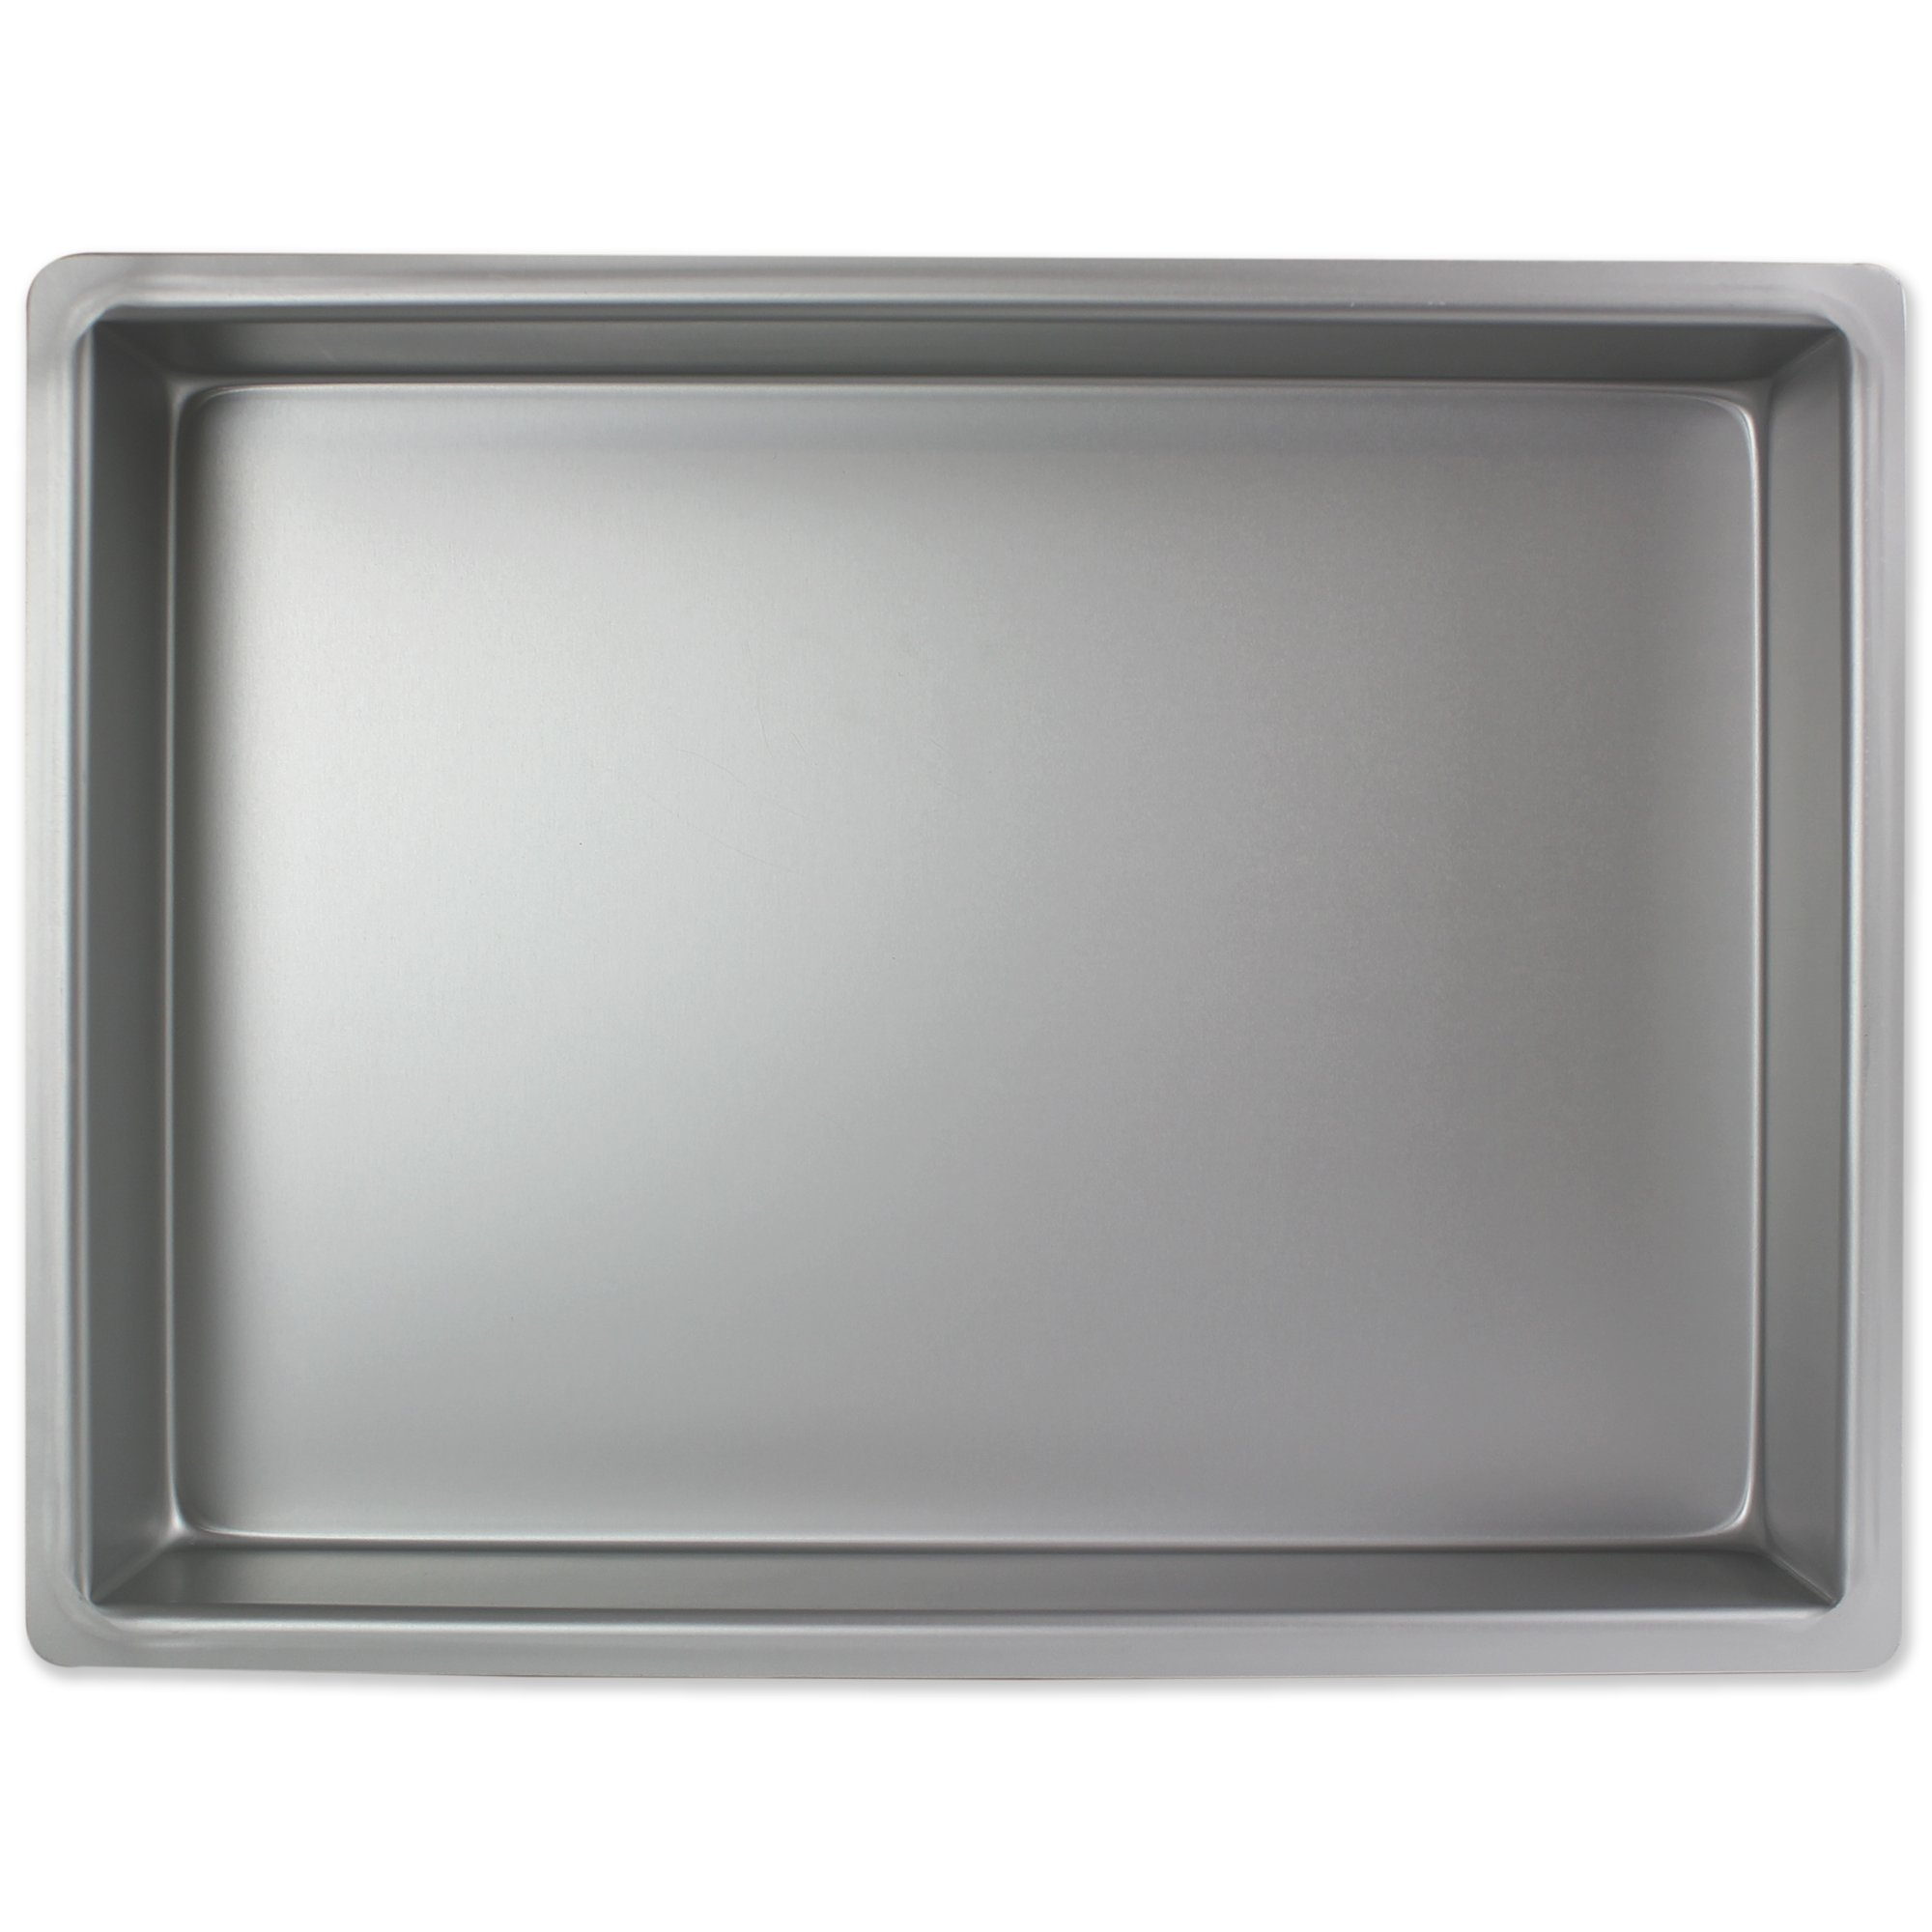 PME Professional Aluminum Oblong Cake Pan (12 x 18 x 4), Standard, Silver